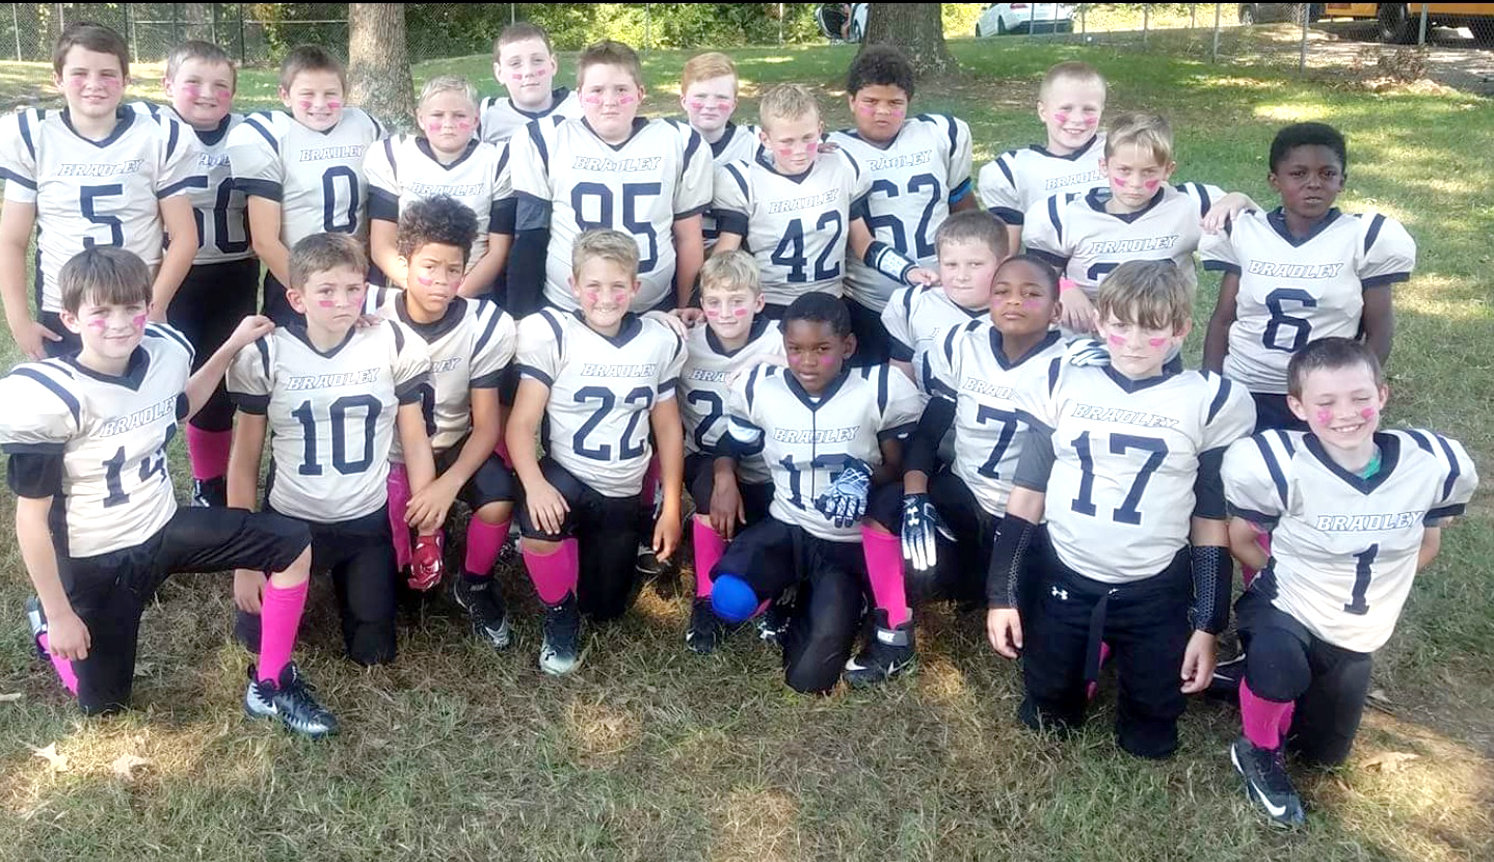 IN SUPPORT of Breast Cancer Awareness Month, the 8 and 9-year-old boys with the Bradley Youth Football team wear pink.